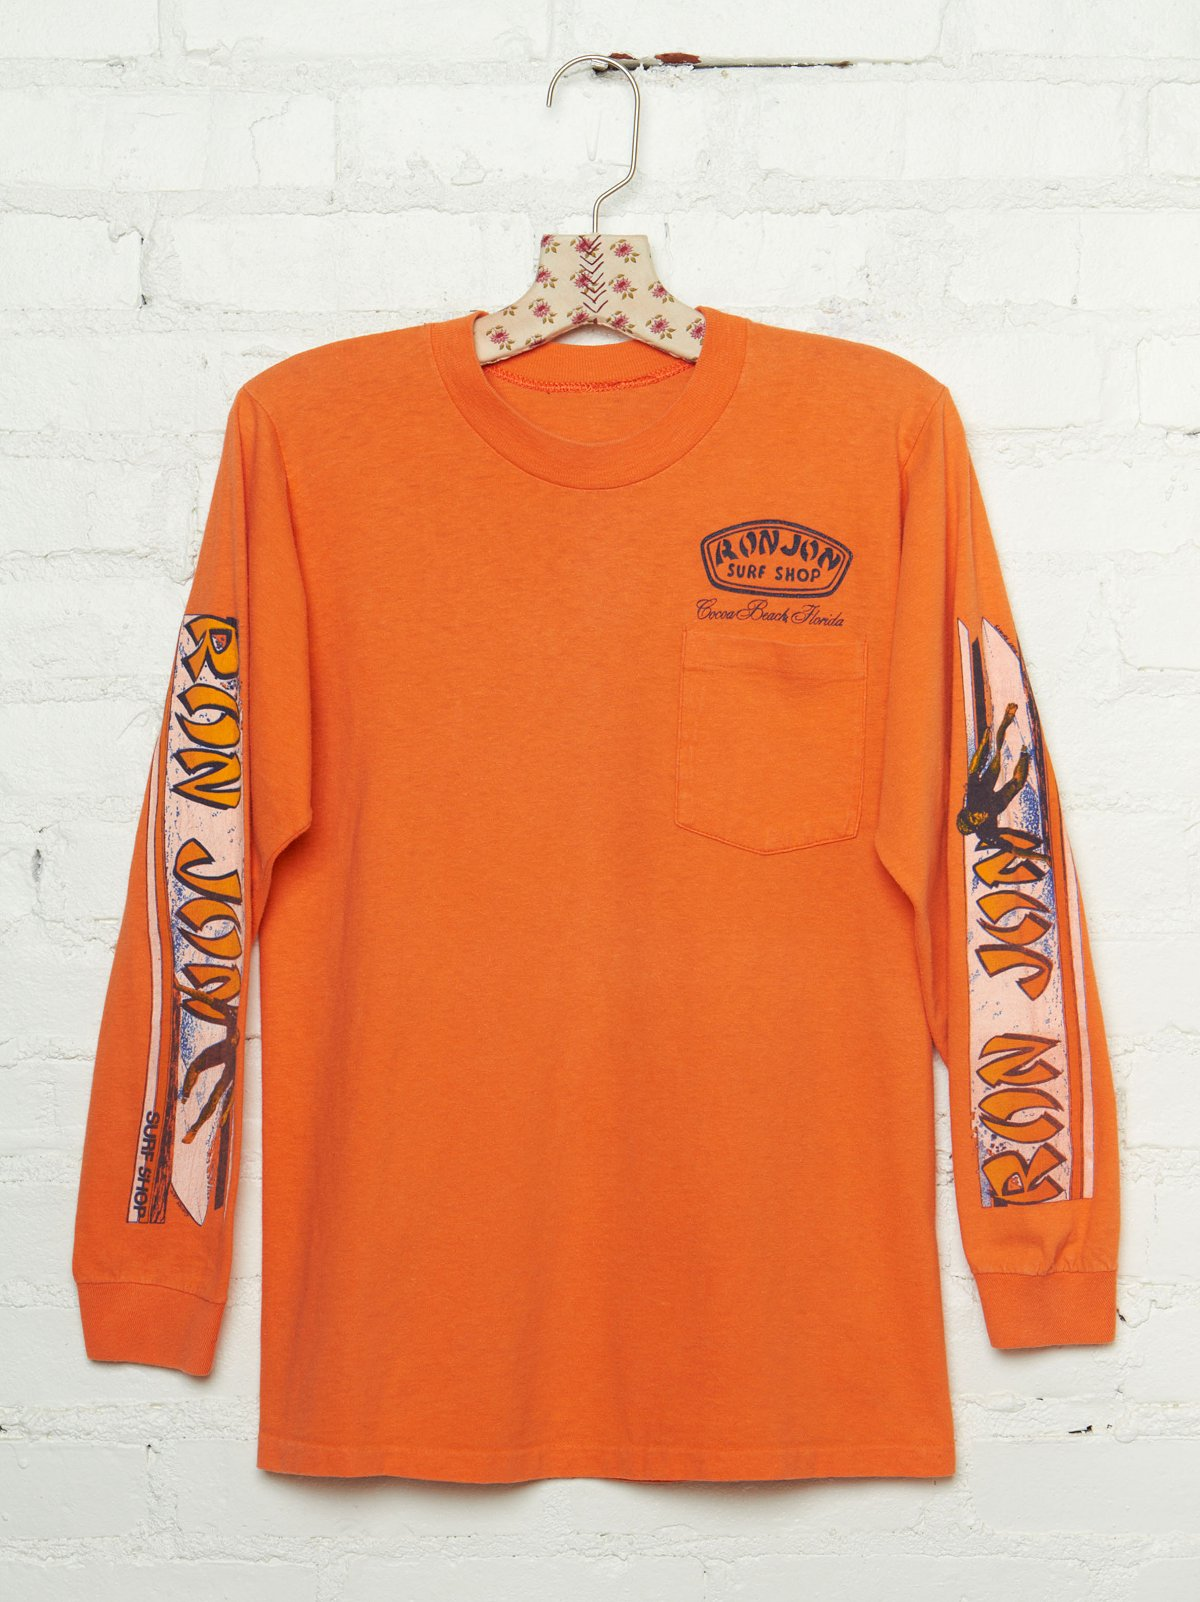 Vintage Ron Jon Surf Shop 1970 Tee